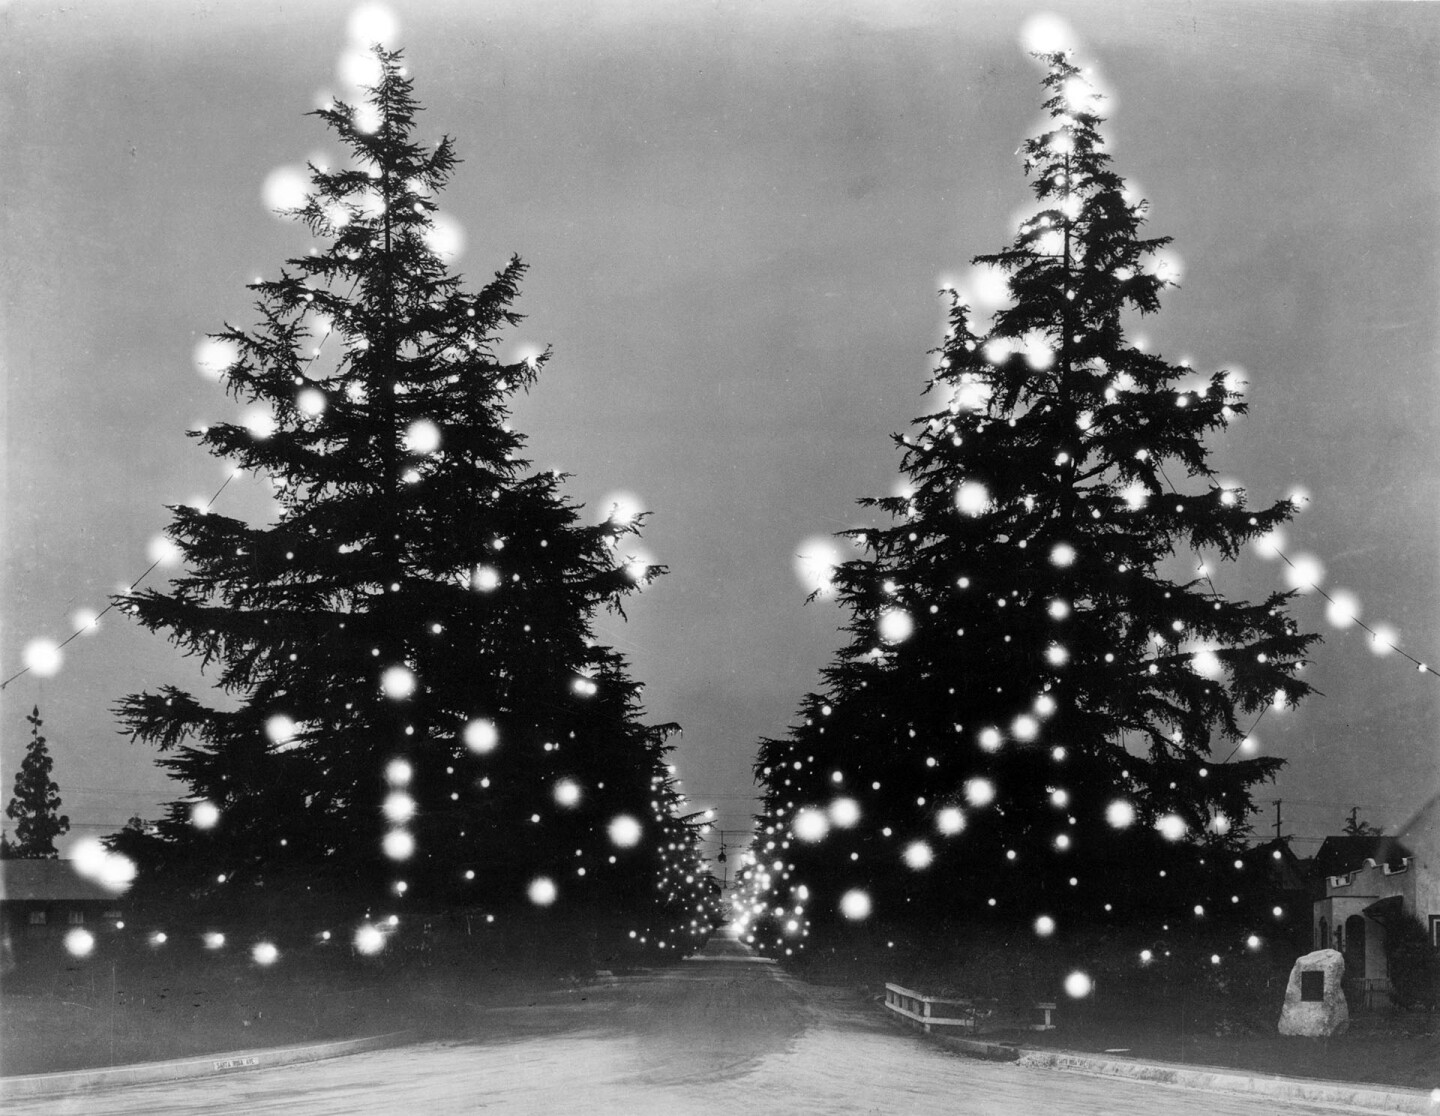 Christmas Tree Lane in 1931. Courtesy of the USC Libraries - Dick Whittington Photography Collection.